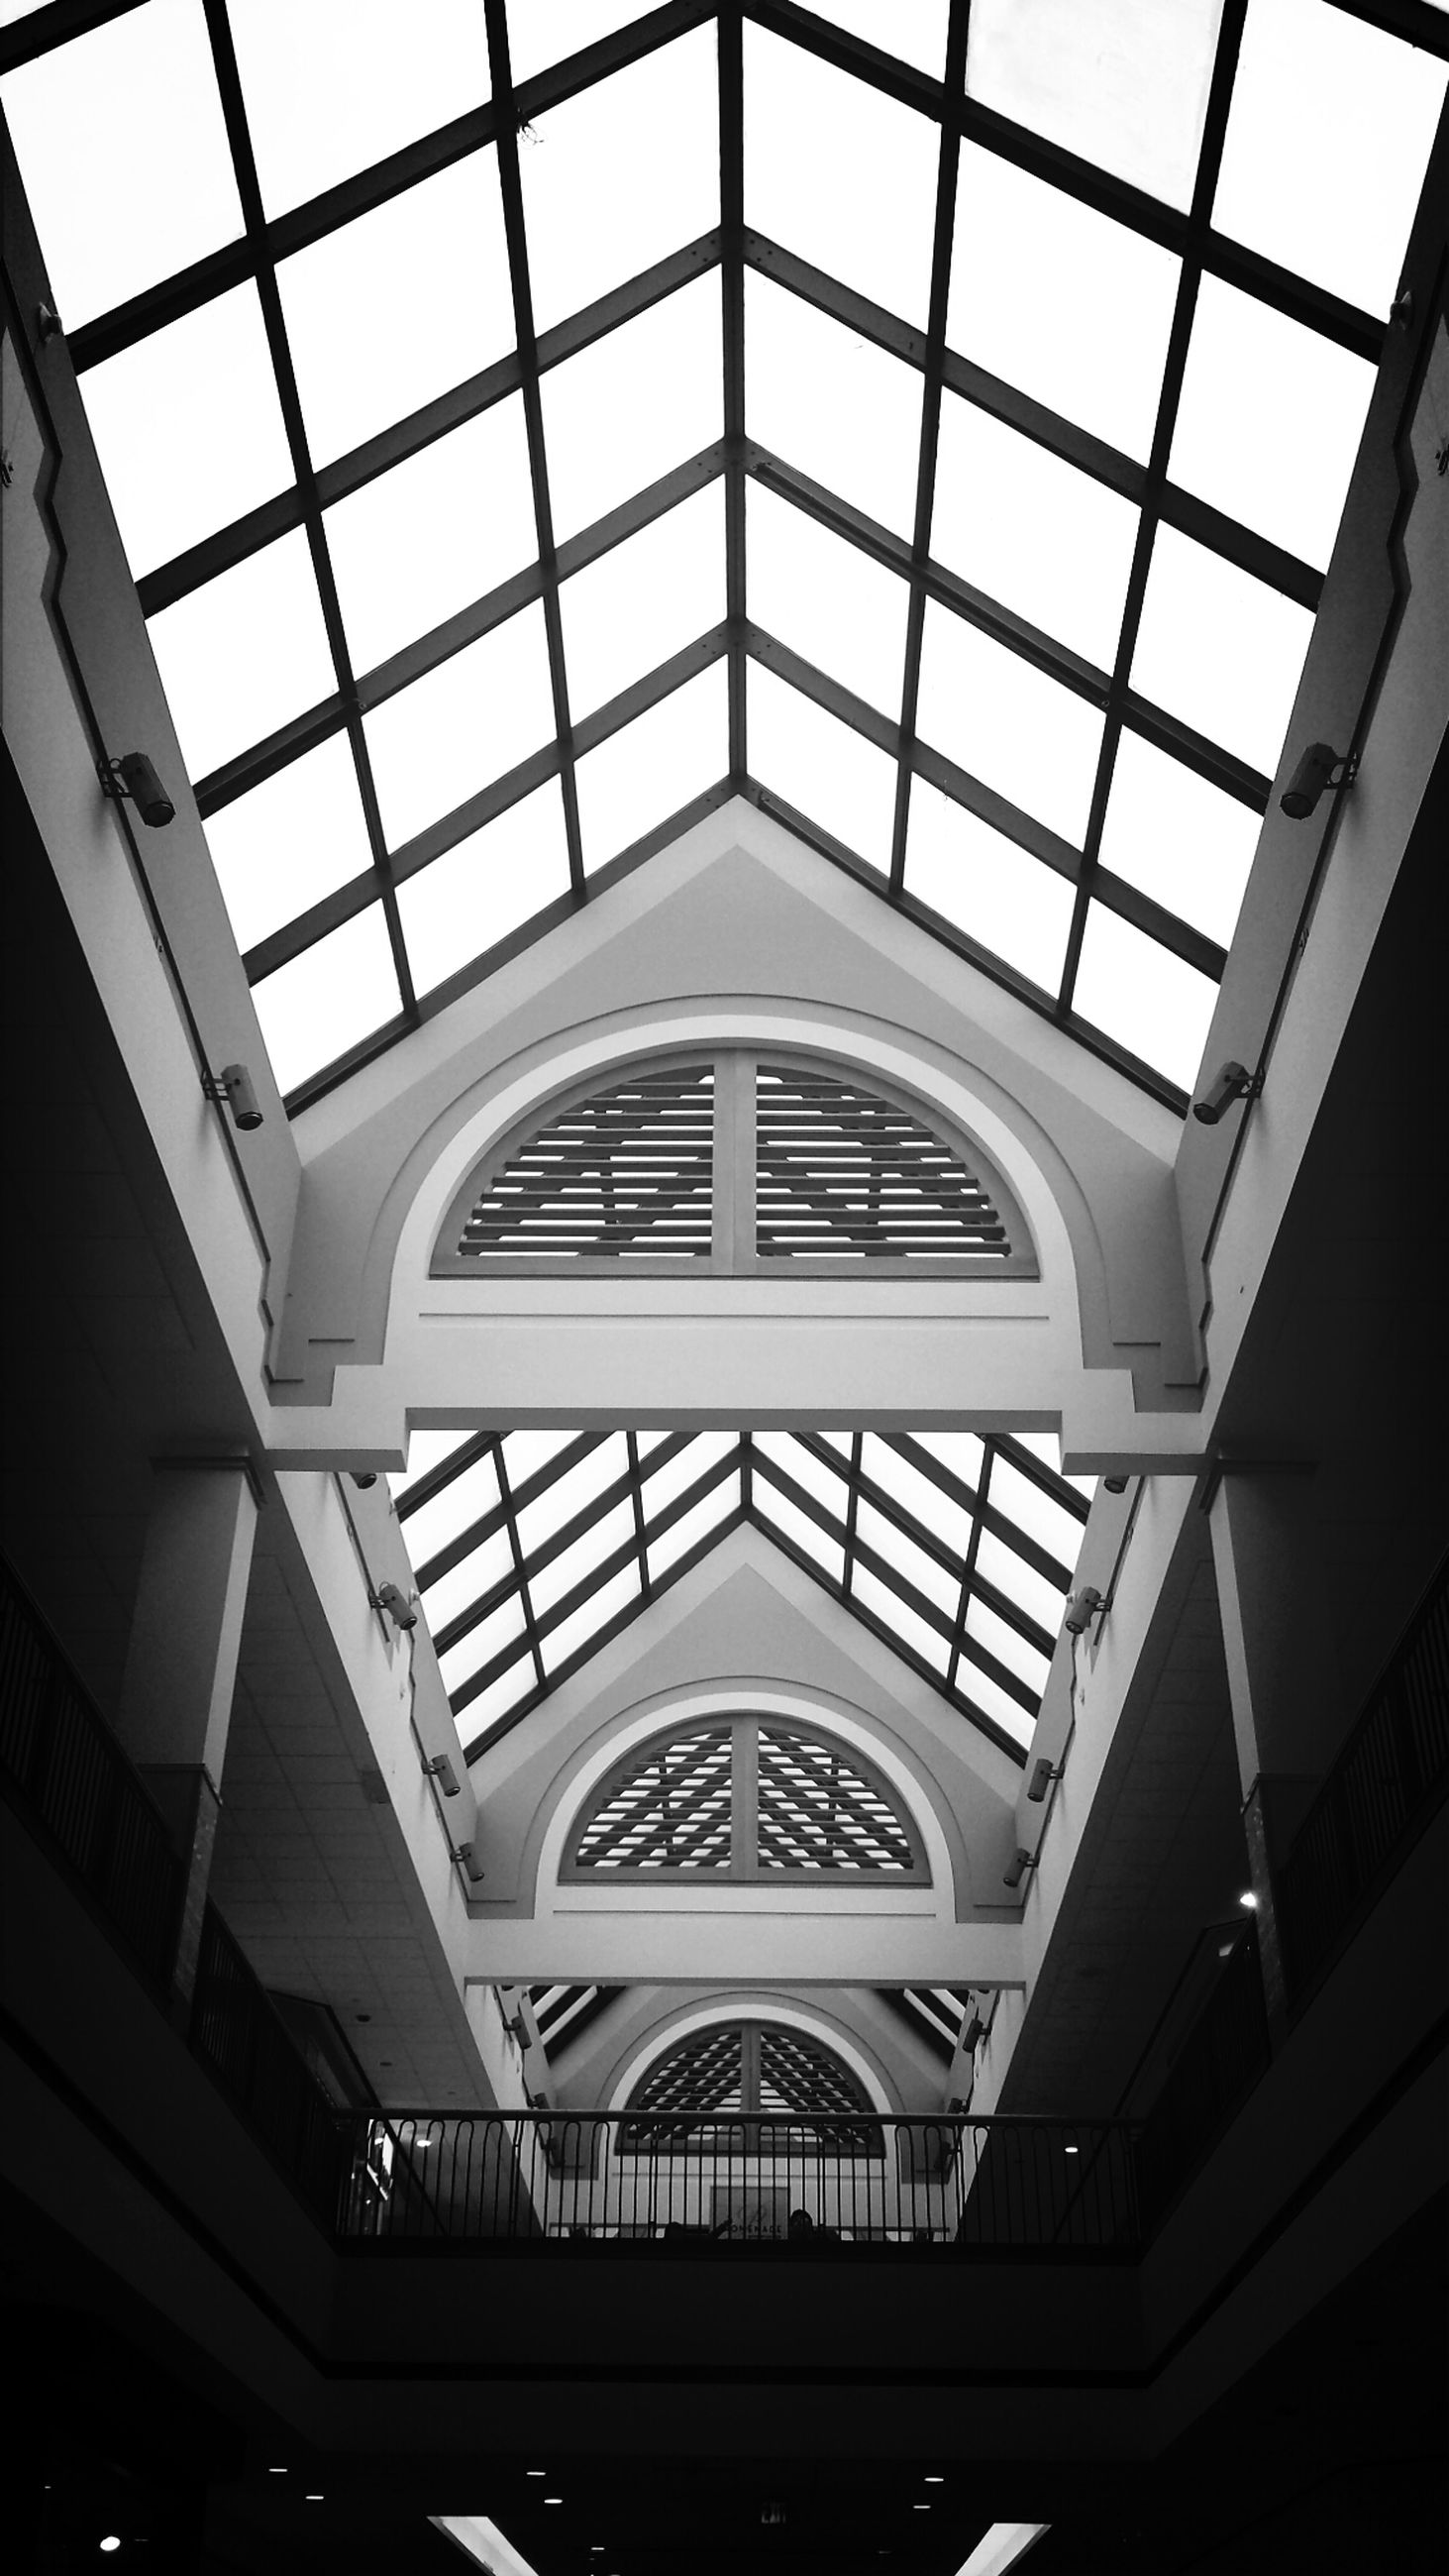 indoors, ceiling, architecture, built structure, low angle view, skylight, glass - material, window, architectural feature, modern, interior, transparent, pattern, design, directly below, building, glass, no people, day, geometric shape